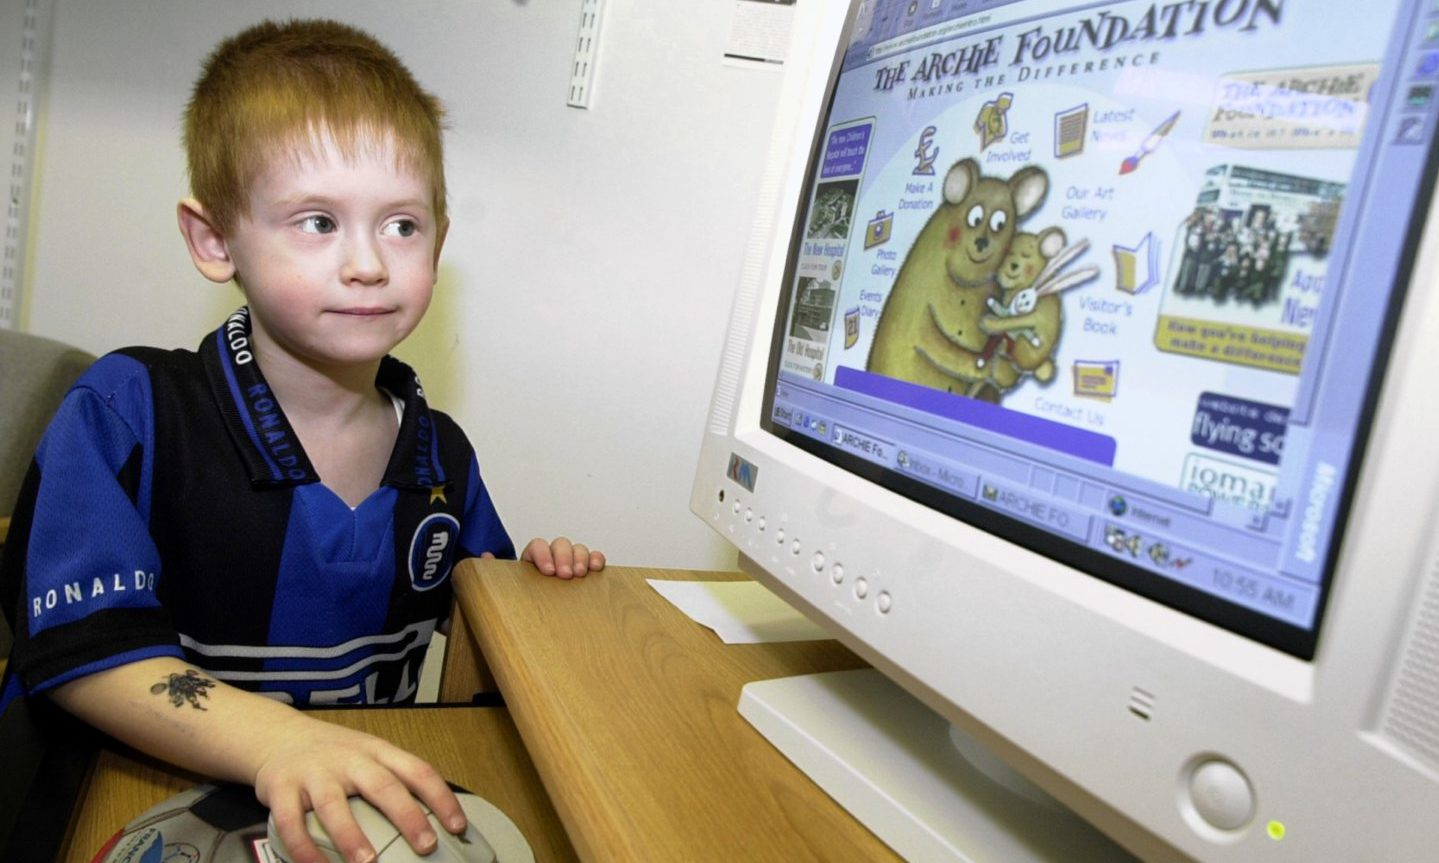 Four-year-old Calum Brunning logs on to the new Archie Foundation website in 2001.